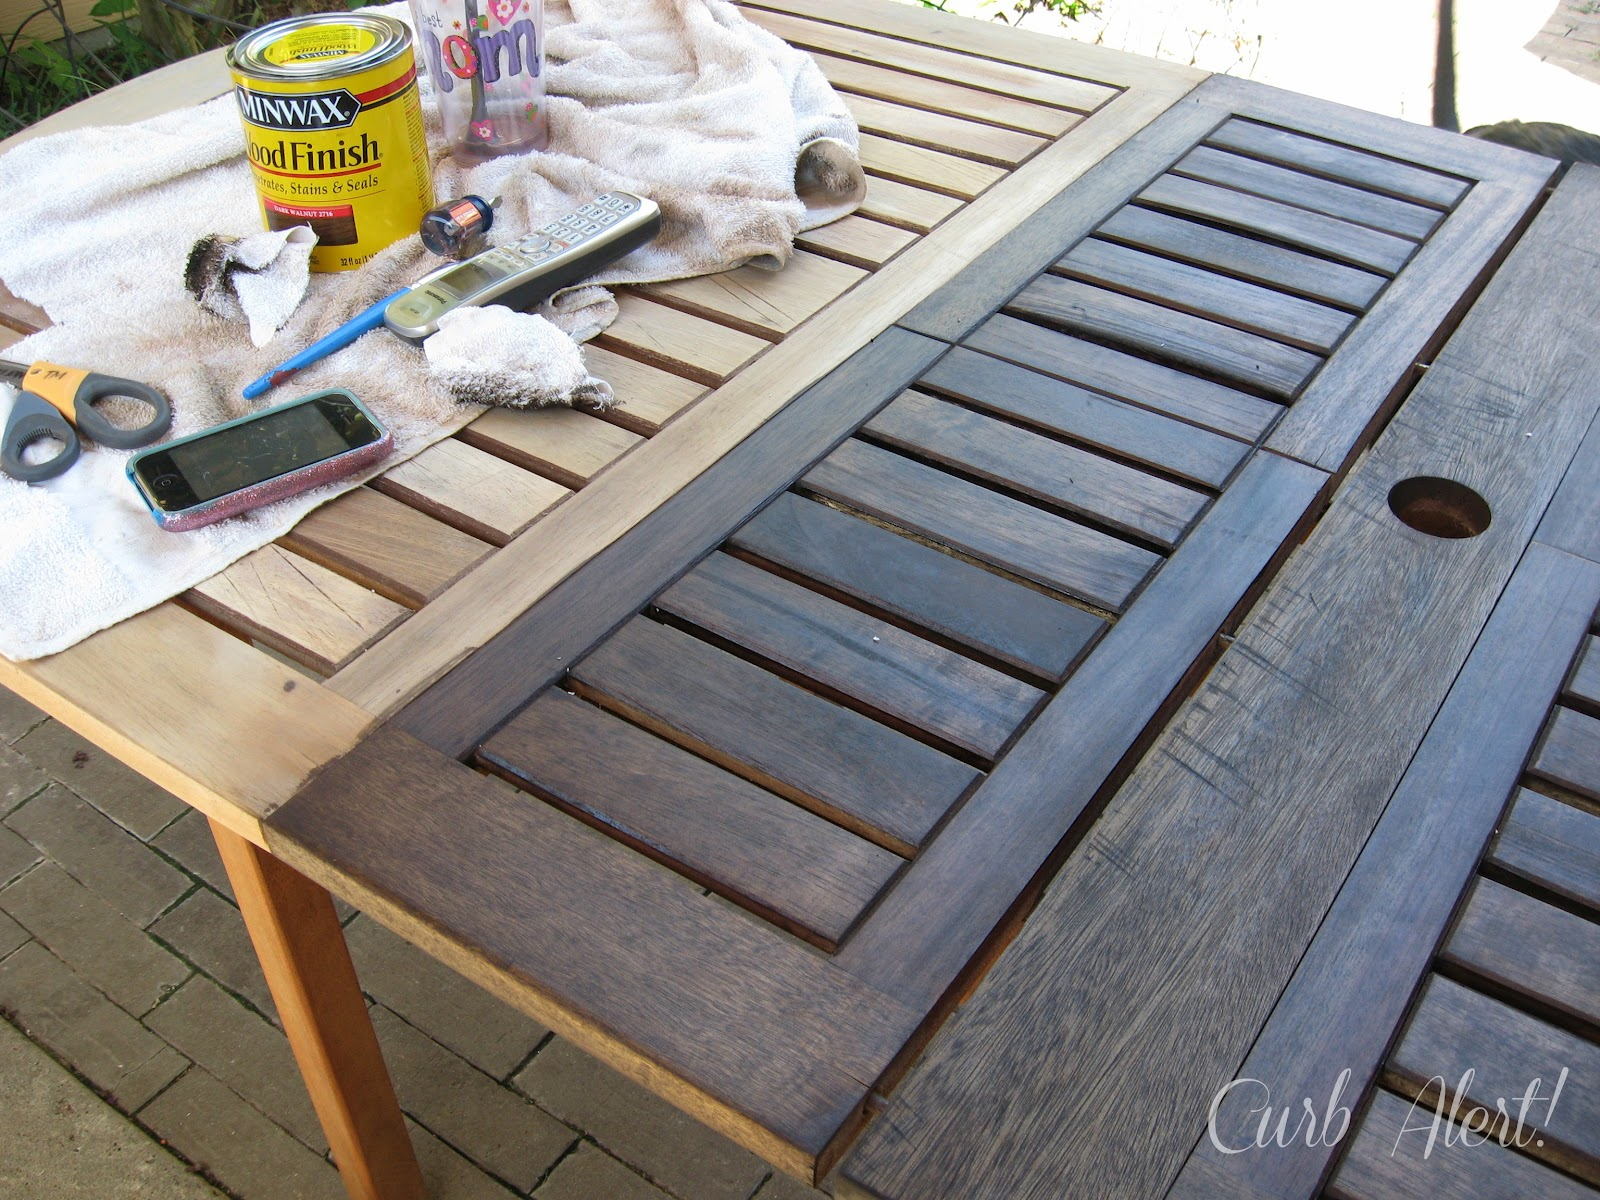 Curb Alert Stained Outdoor Wood Table